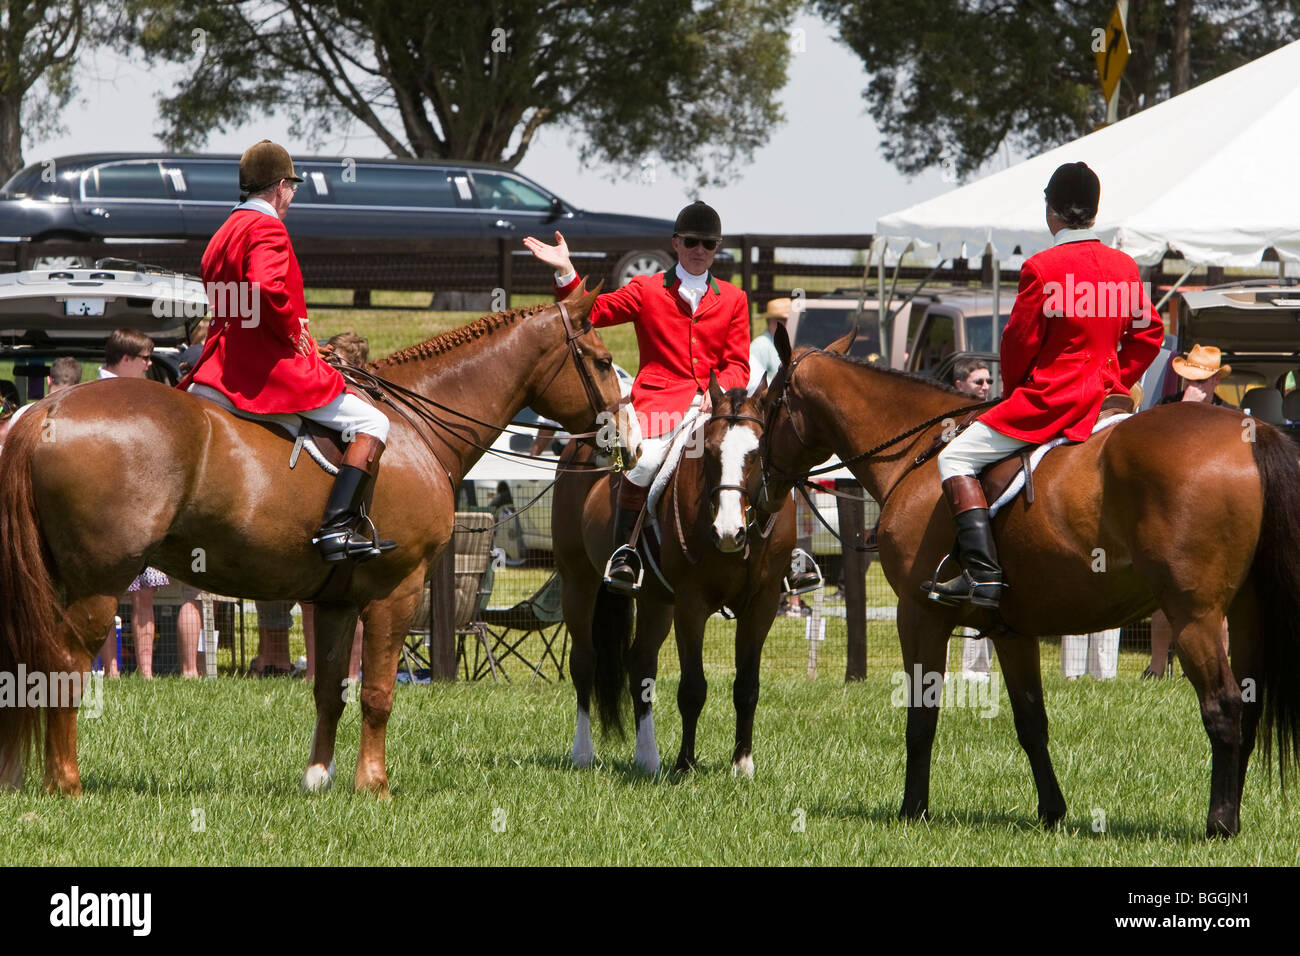 Steeplechase outriders in red coats assemble during the Foxfield Races, Charlottesville, VA, United States of America Stock Photo